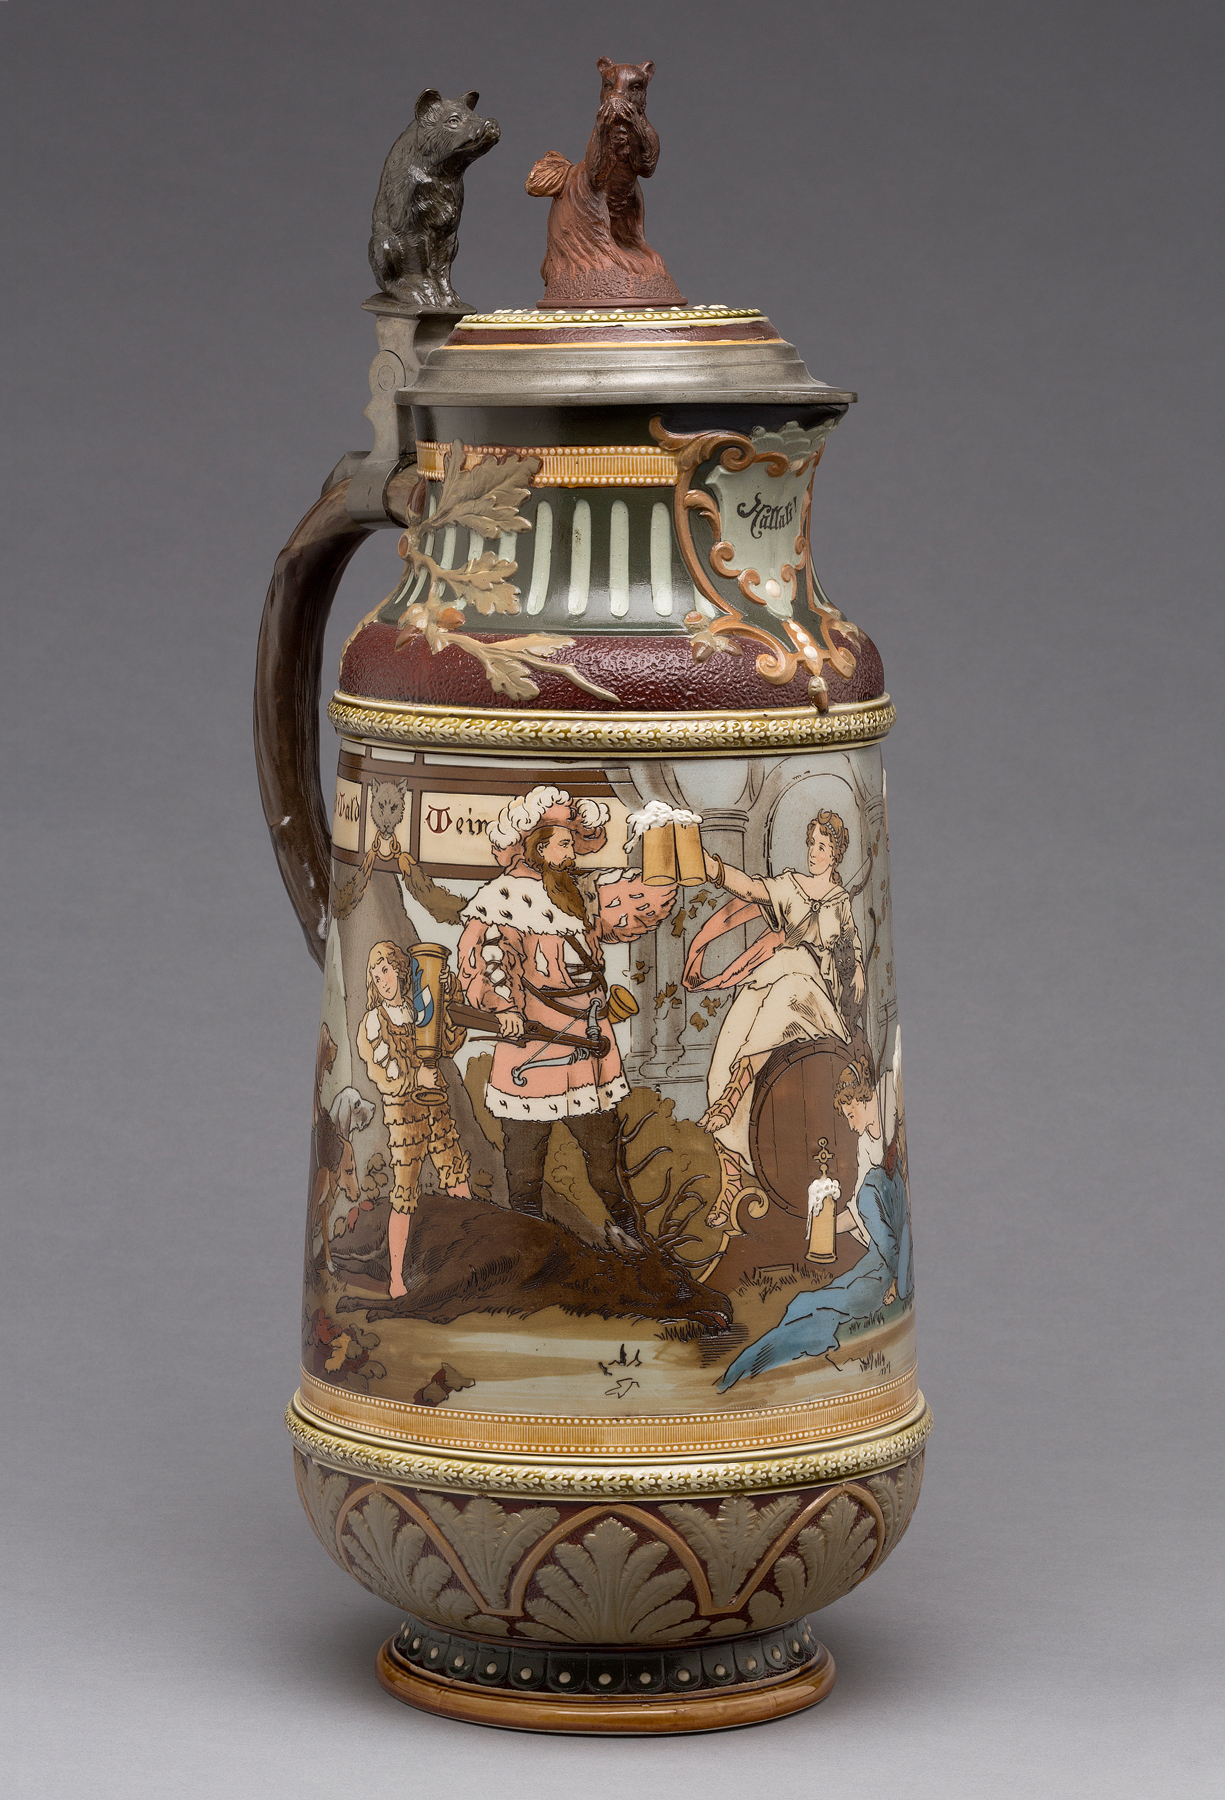 """Villeroy & Boch (Mettlach, Saarland, Germany, established 1836). """"2205"""" Covered Pitcher, 1897. Stoneware, with colored slip and glaze decoration, gilding, and pewter. Milwaukee Art Museum, Gift of the René von Schleinitz Foundation M1962.666. Photo credit: John R. Glembin."""